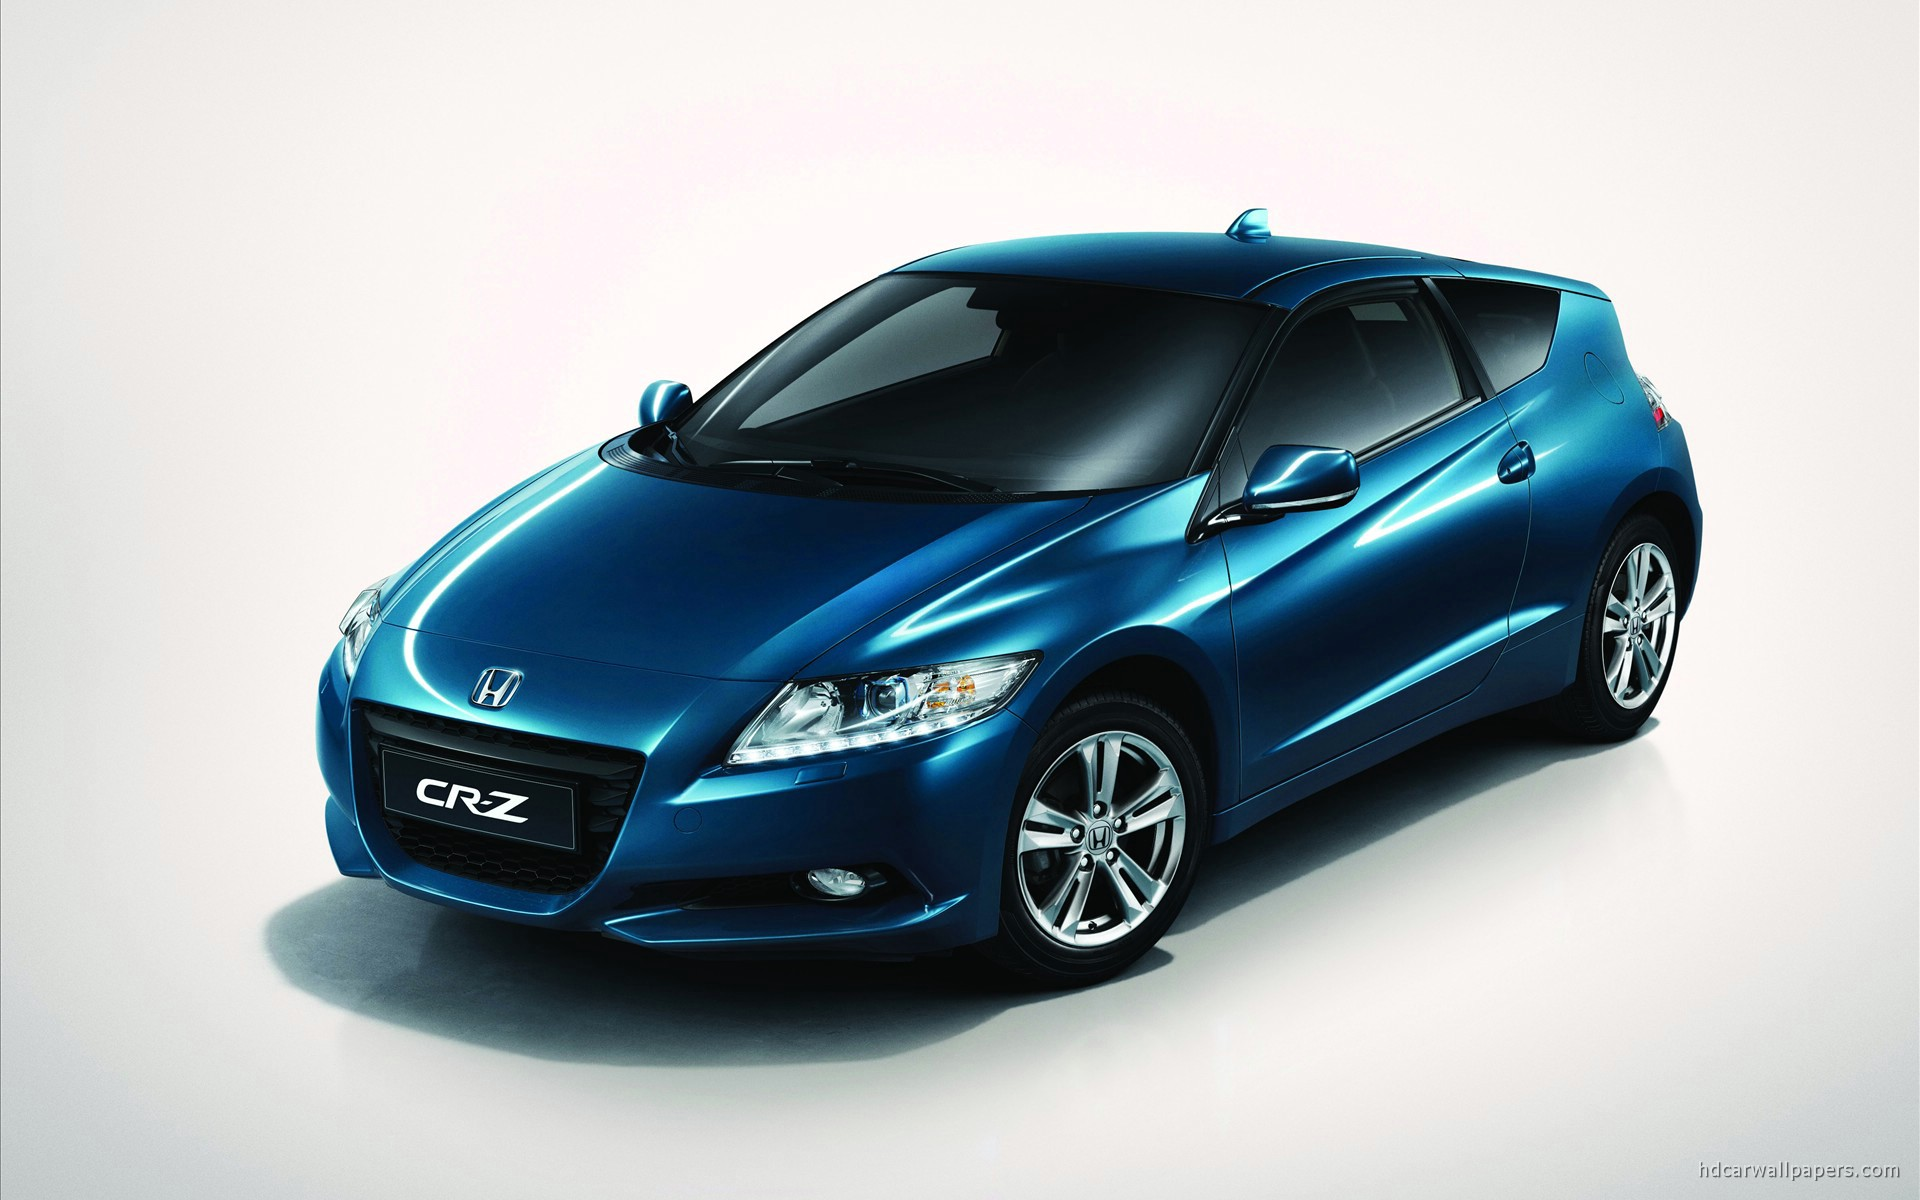 2011 honda cr z sport hybrid coupe 2 wallpaper hd car wallpapers id 1025. Black Bedroom Furniture Sets. Home Design Ideas